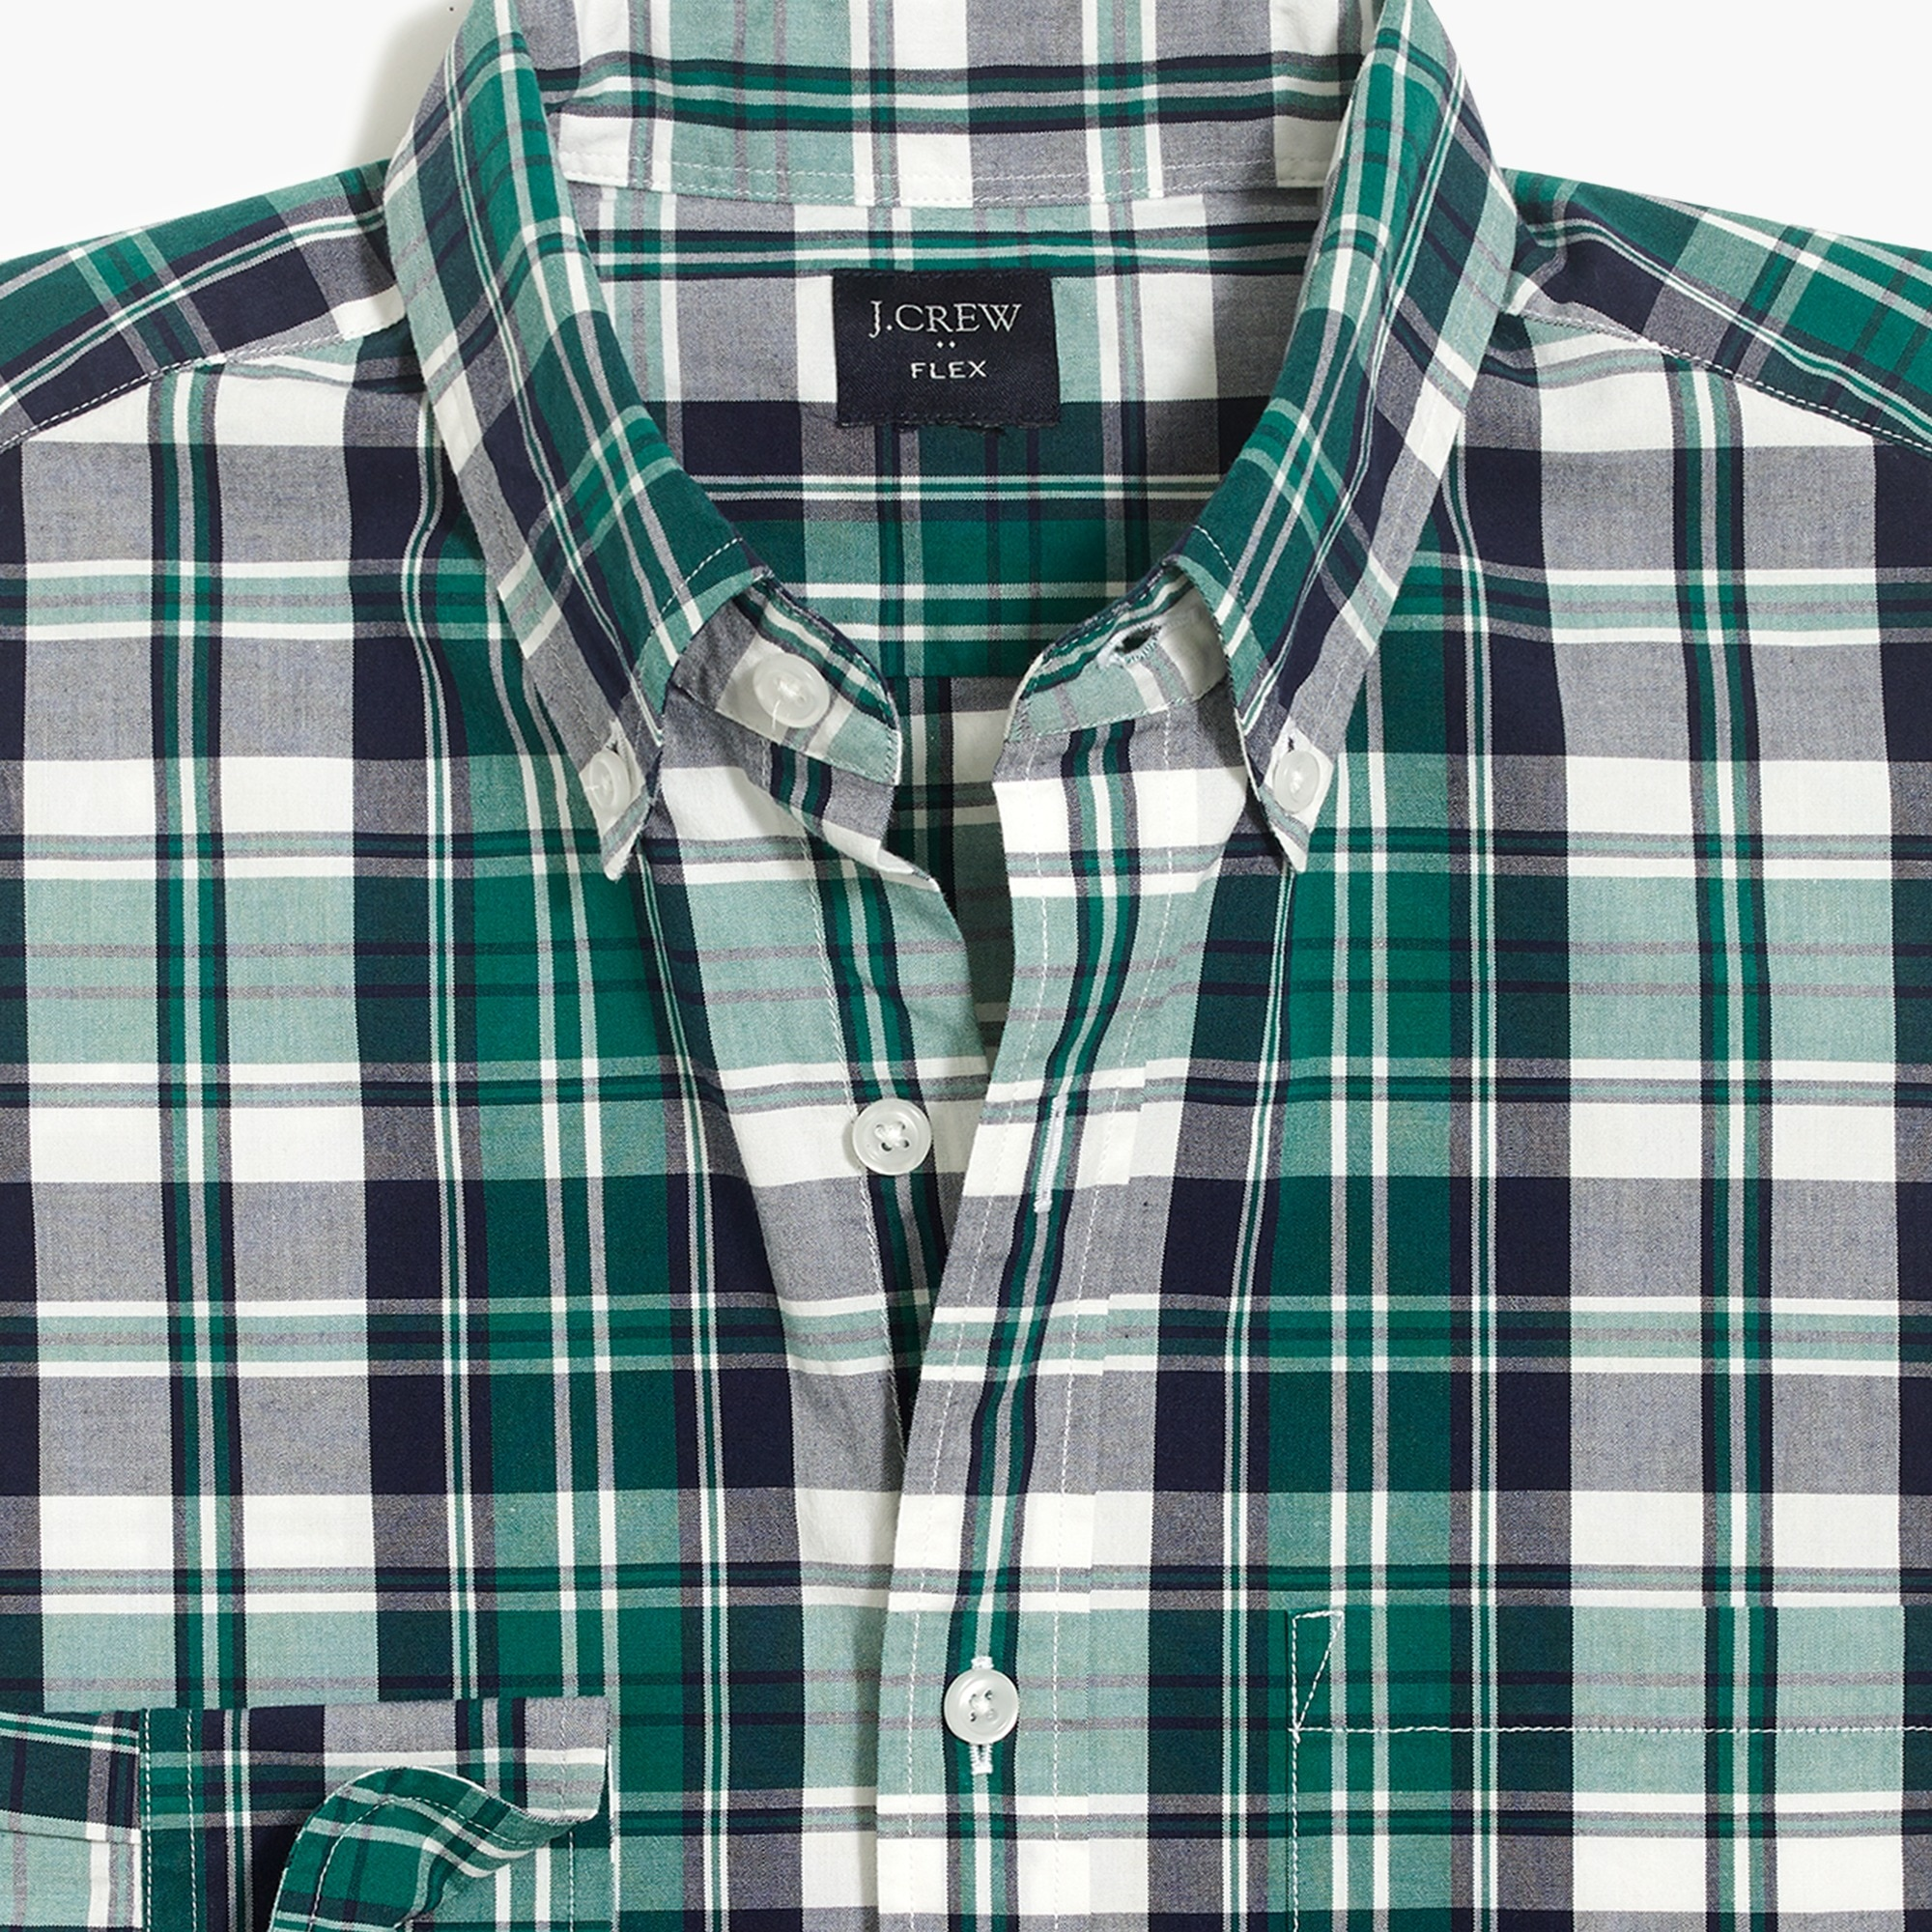 Image 1 for Flex washed shirt in plaid